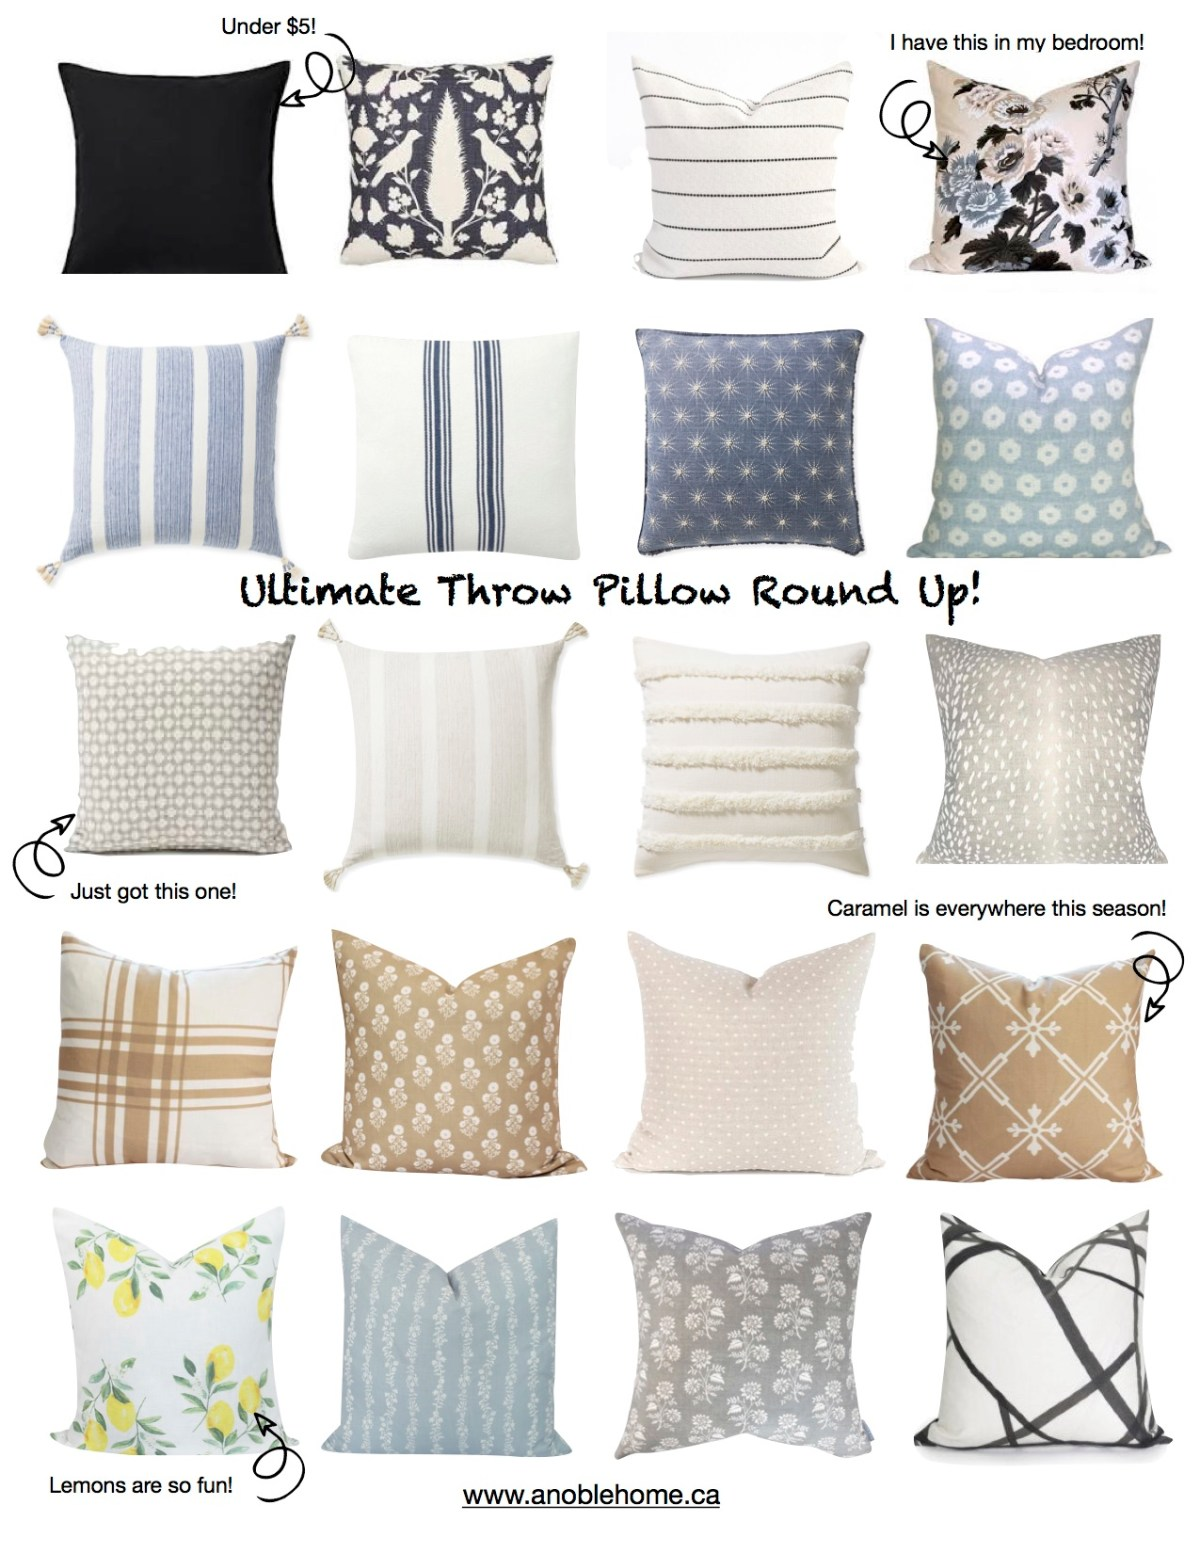 Ultimate Throw Pillow Round Up!